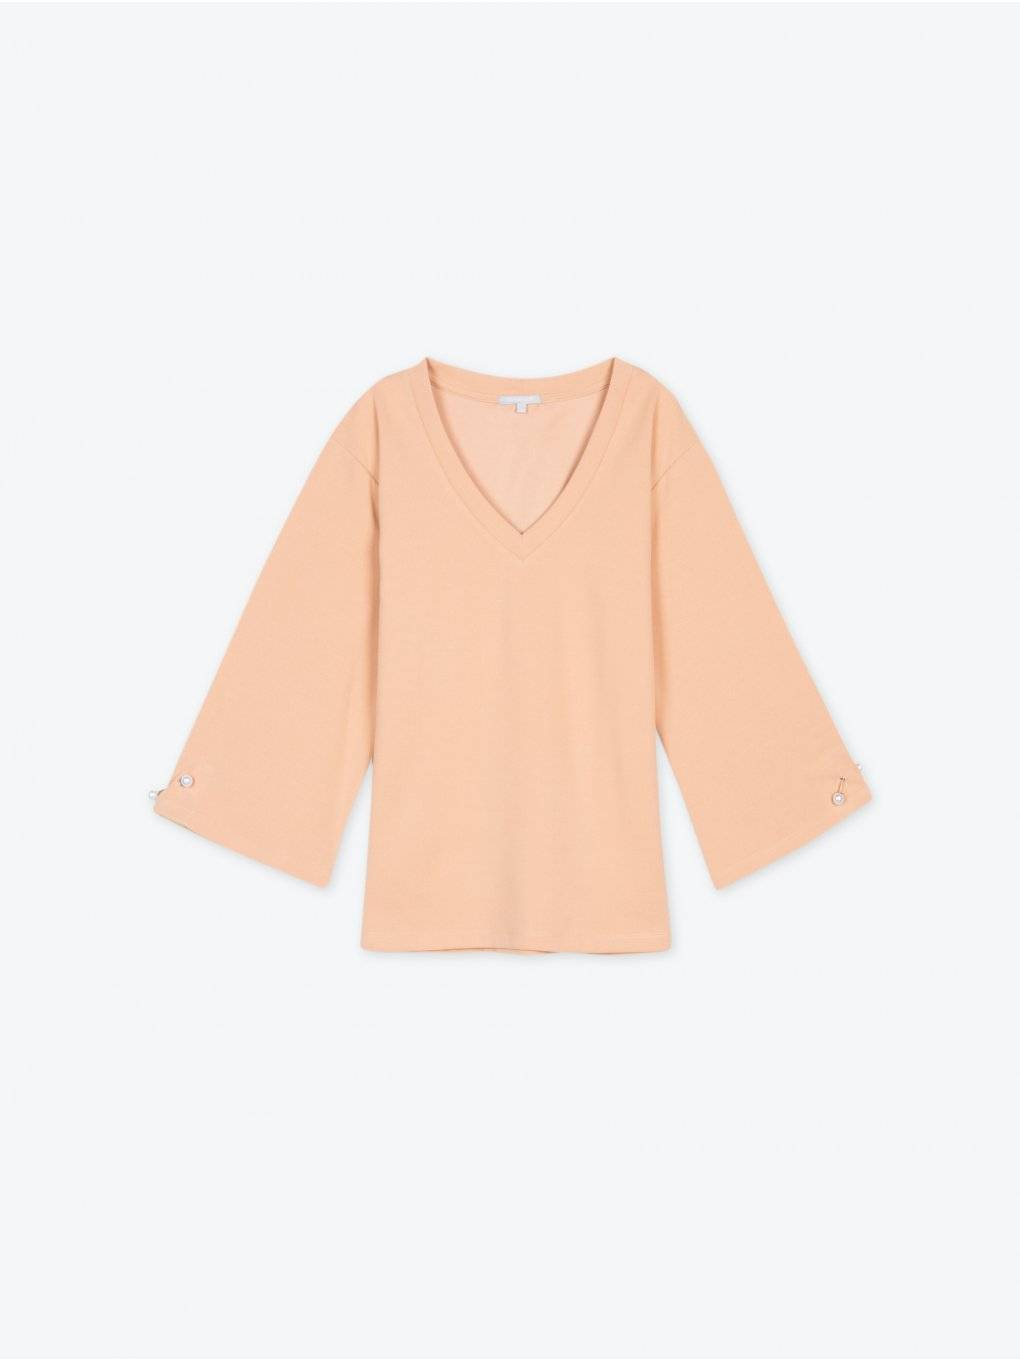 Oversized v-neck top with perls